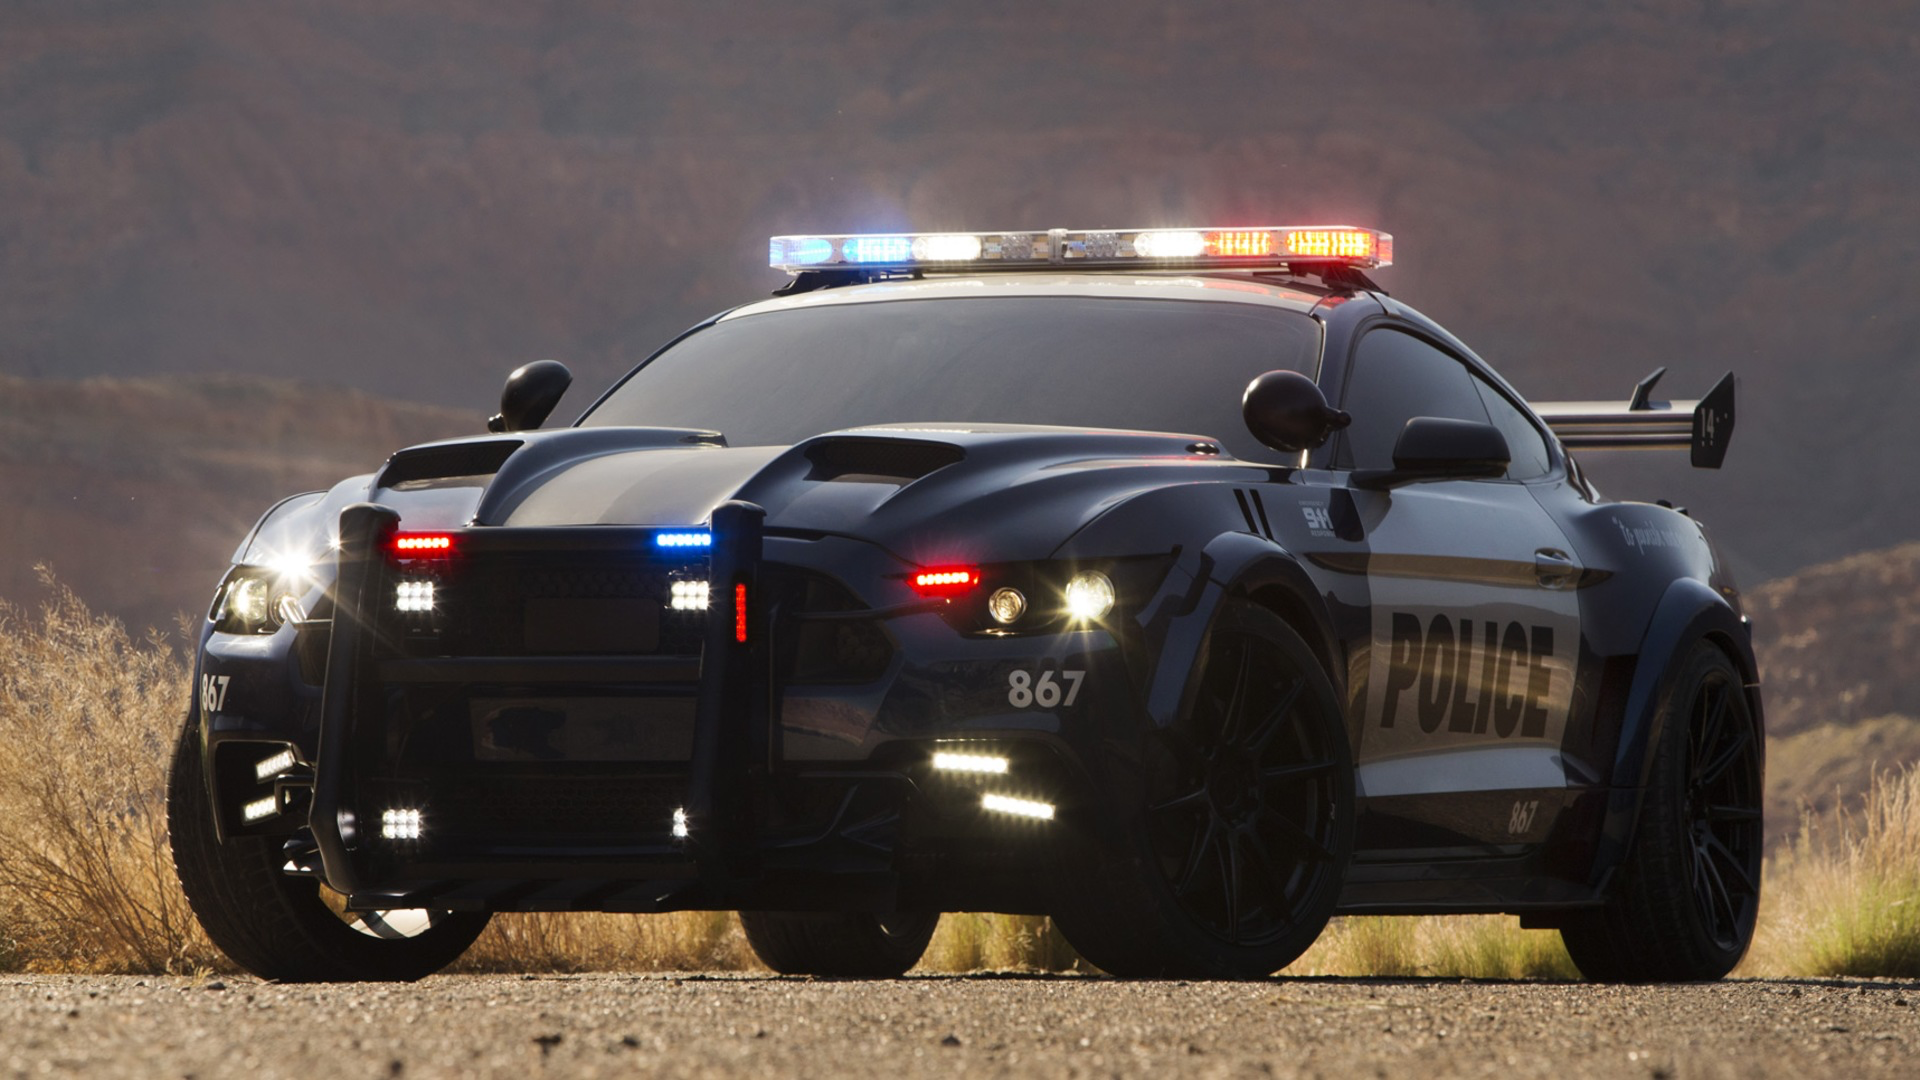 Who wants this in Forza Motorsport 7 and Horizon 4 as a police car? This is from Transformers T.L.K.